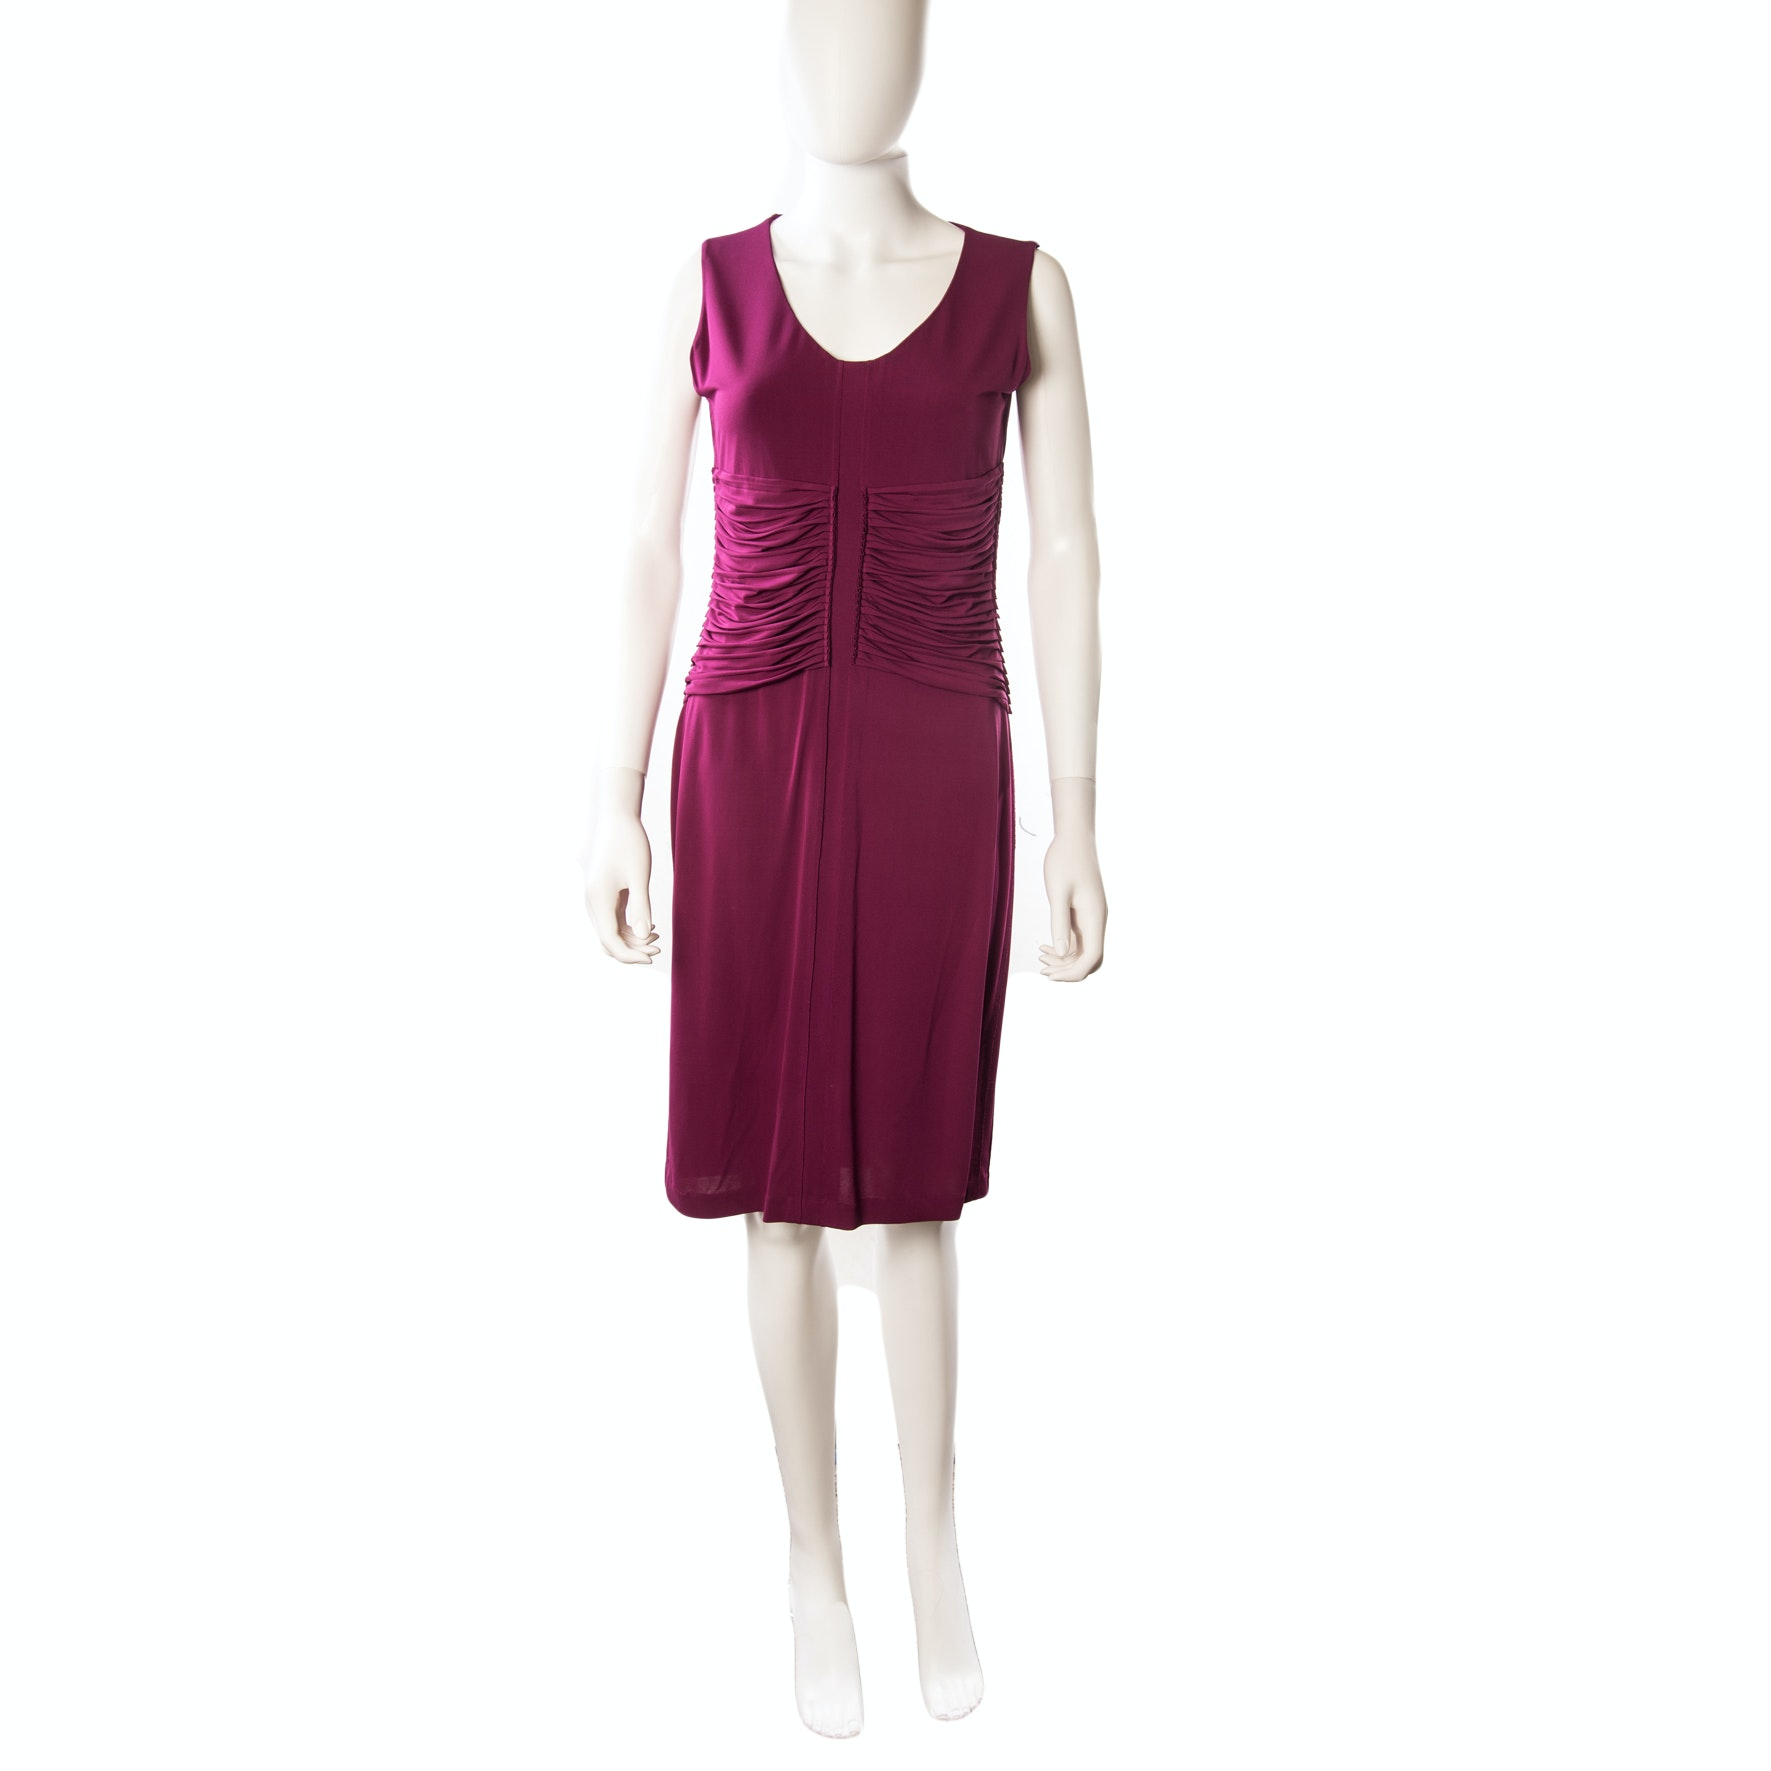 Escada Erika Ruched Sleeveless Sheath Dress in Anemone